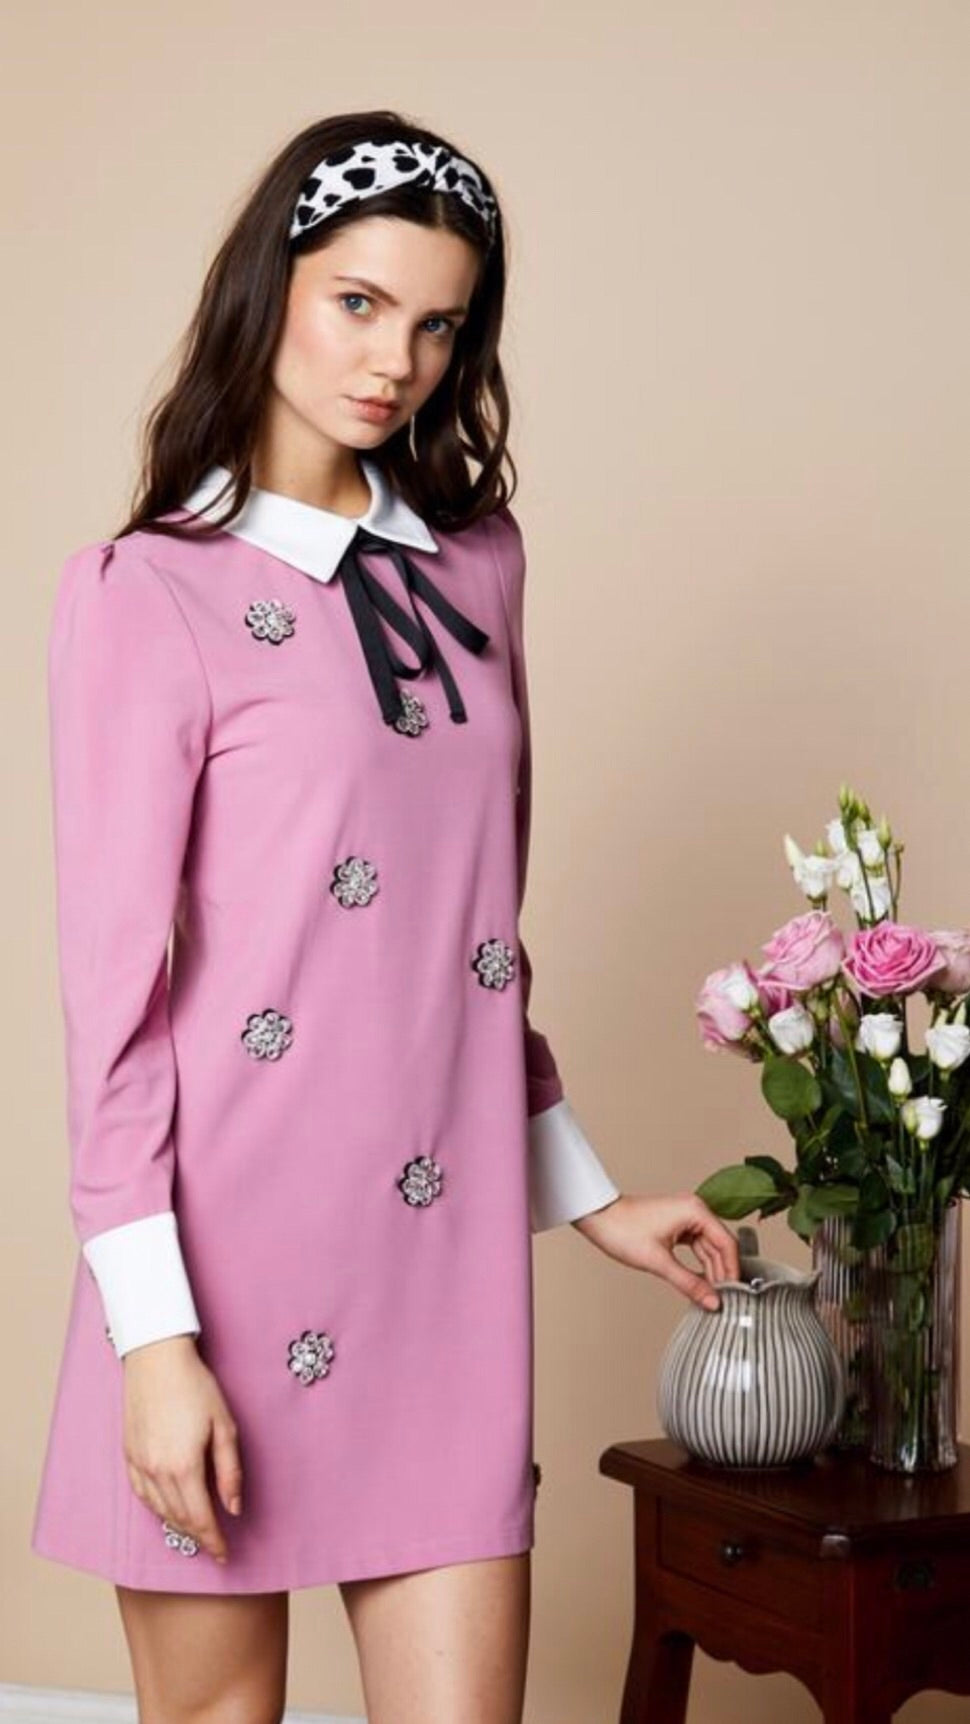 Sister Jane Flowering Rabbit Dress